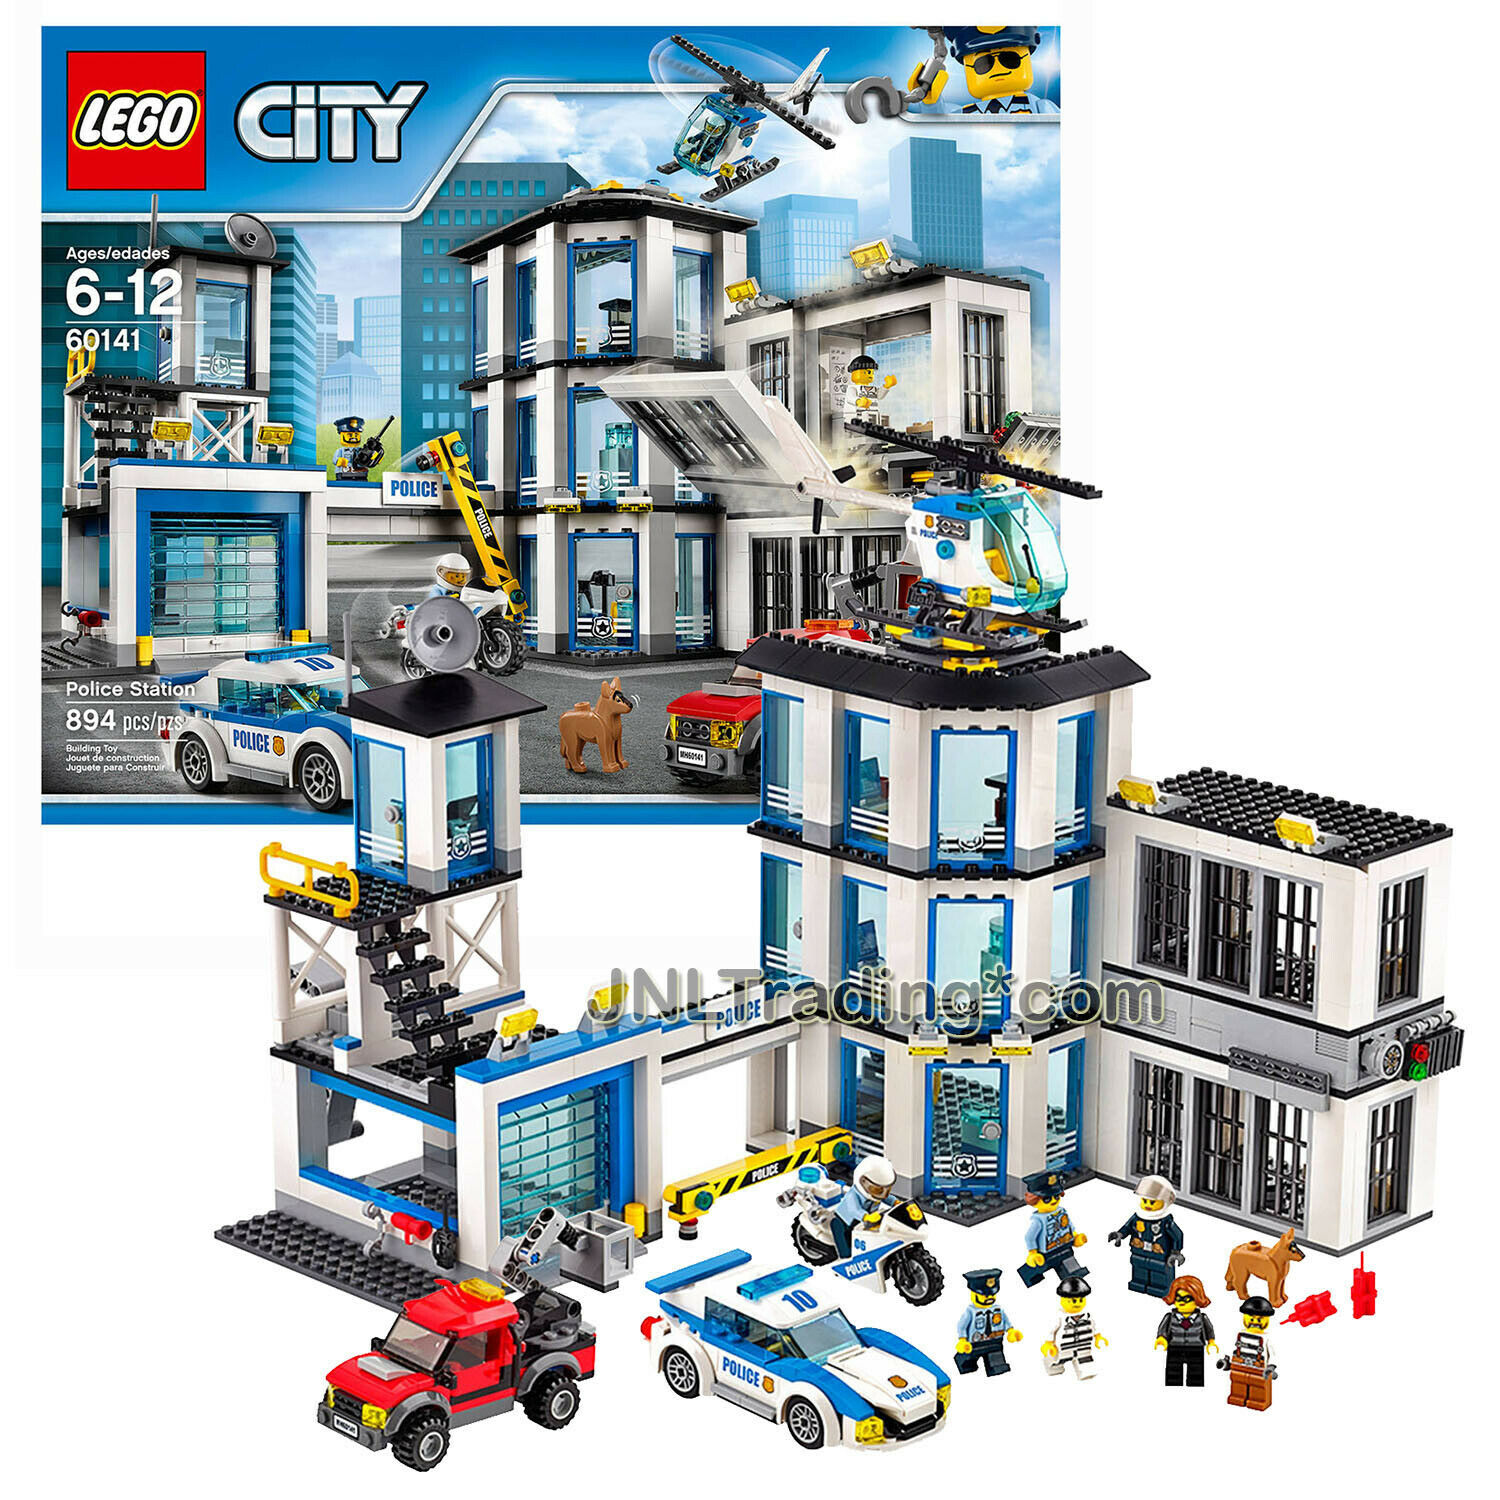 New 2017 Lego City 60141 POLICE STATION with 4 Police, 3 Crook and Dog (894 Pcs)